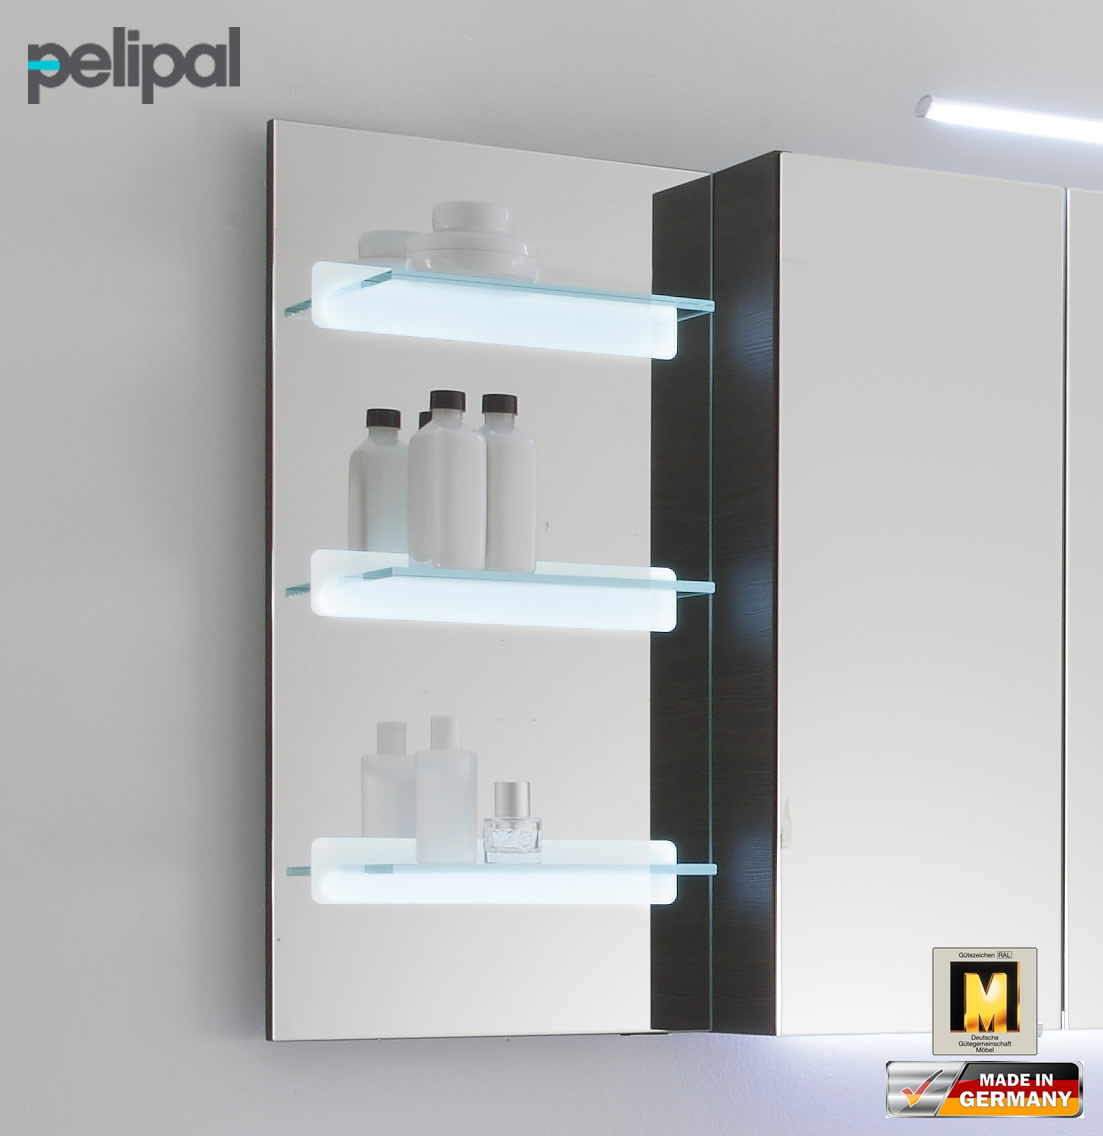 pelipal solitaire 7005 ablagepaneel 70 cm mit led rd fspan 01 impuls home. Black Bedroom Furniture Sets. Home Design Ideas